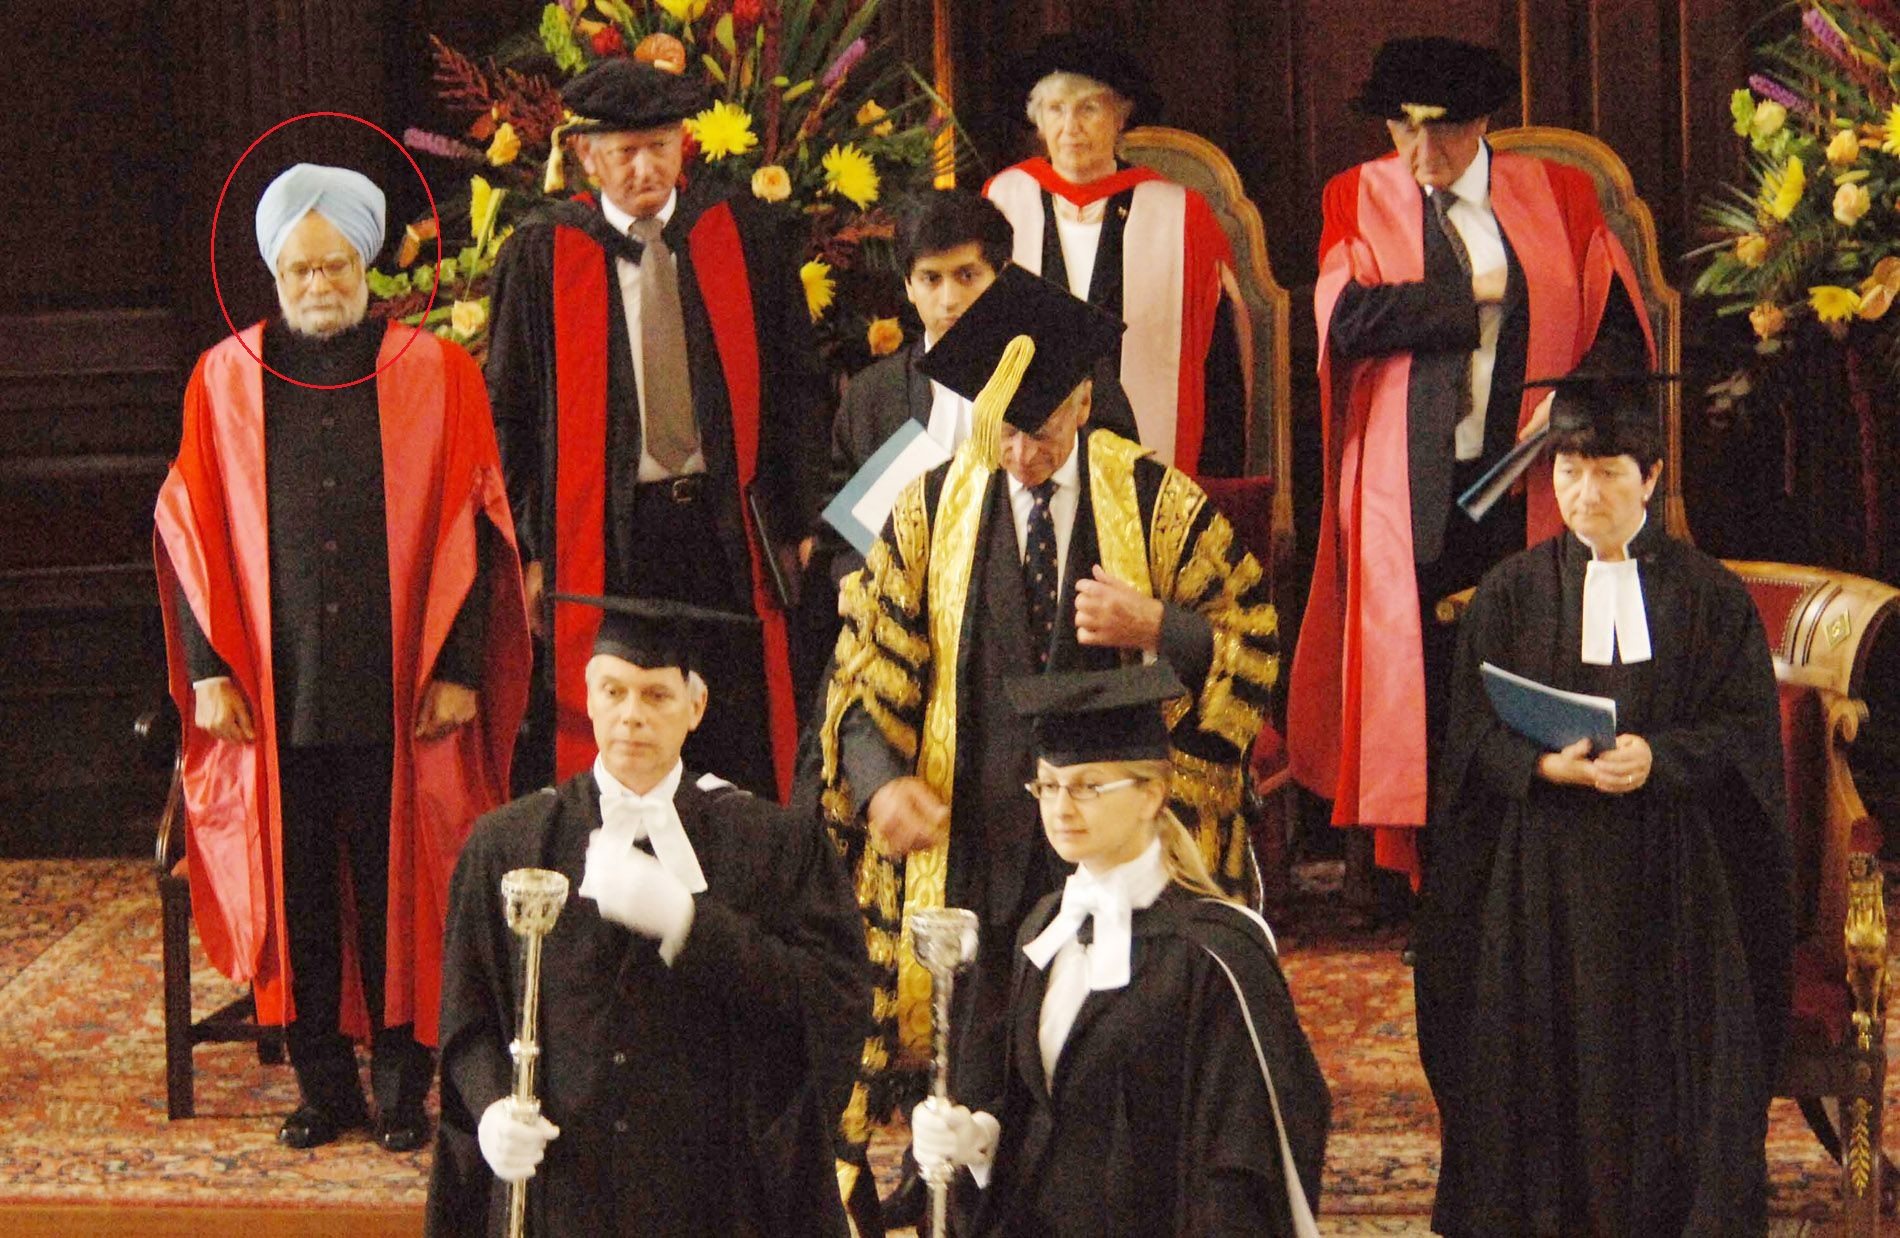 Manmohan Singh Conferred With Honourary Doctoral Degree, Edinburgh,London